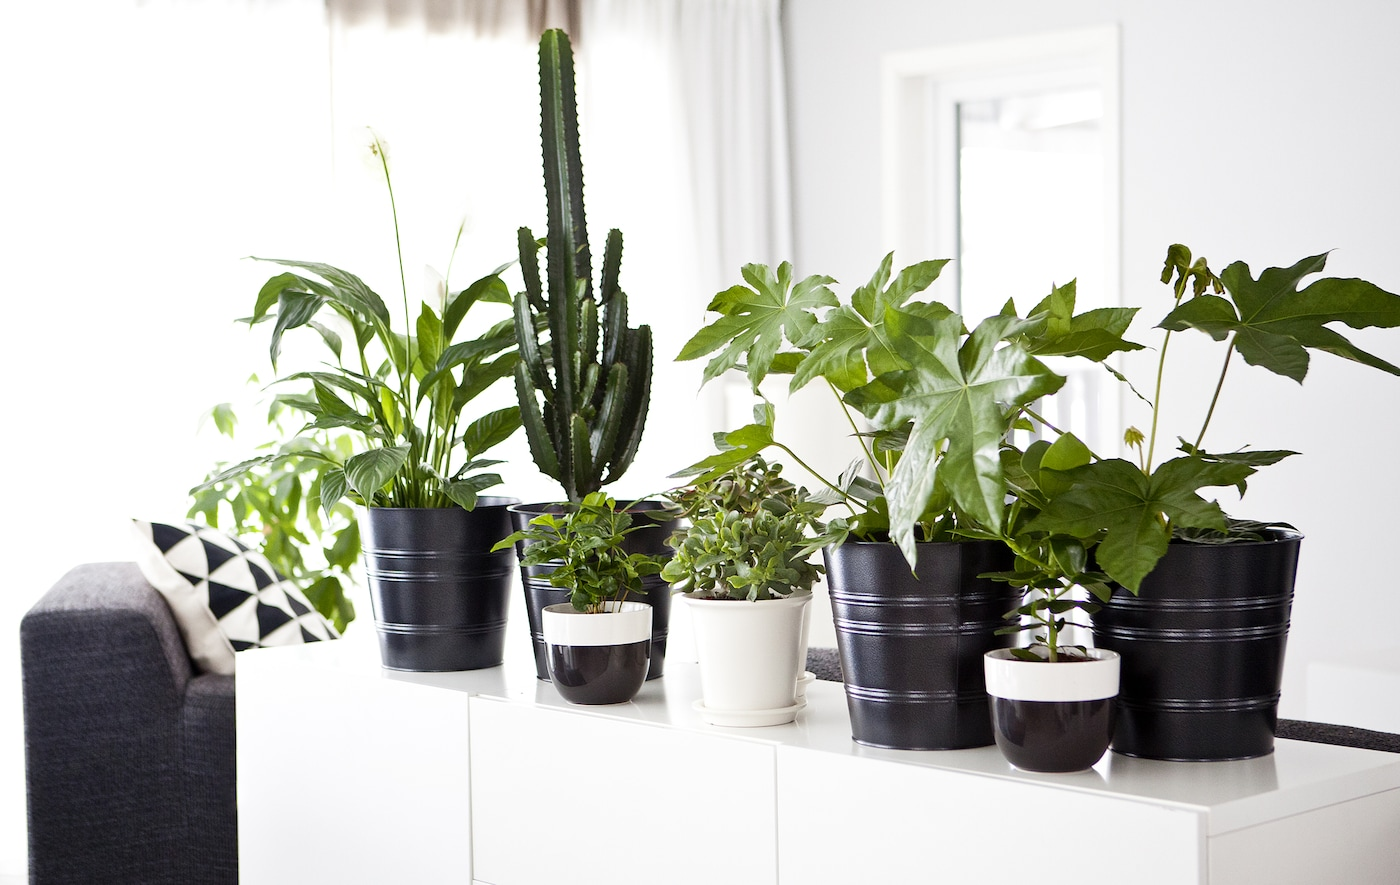 A monochrome interior with a white sideboard decorated using lots of potted green plants.